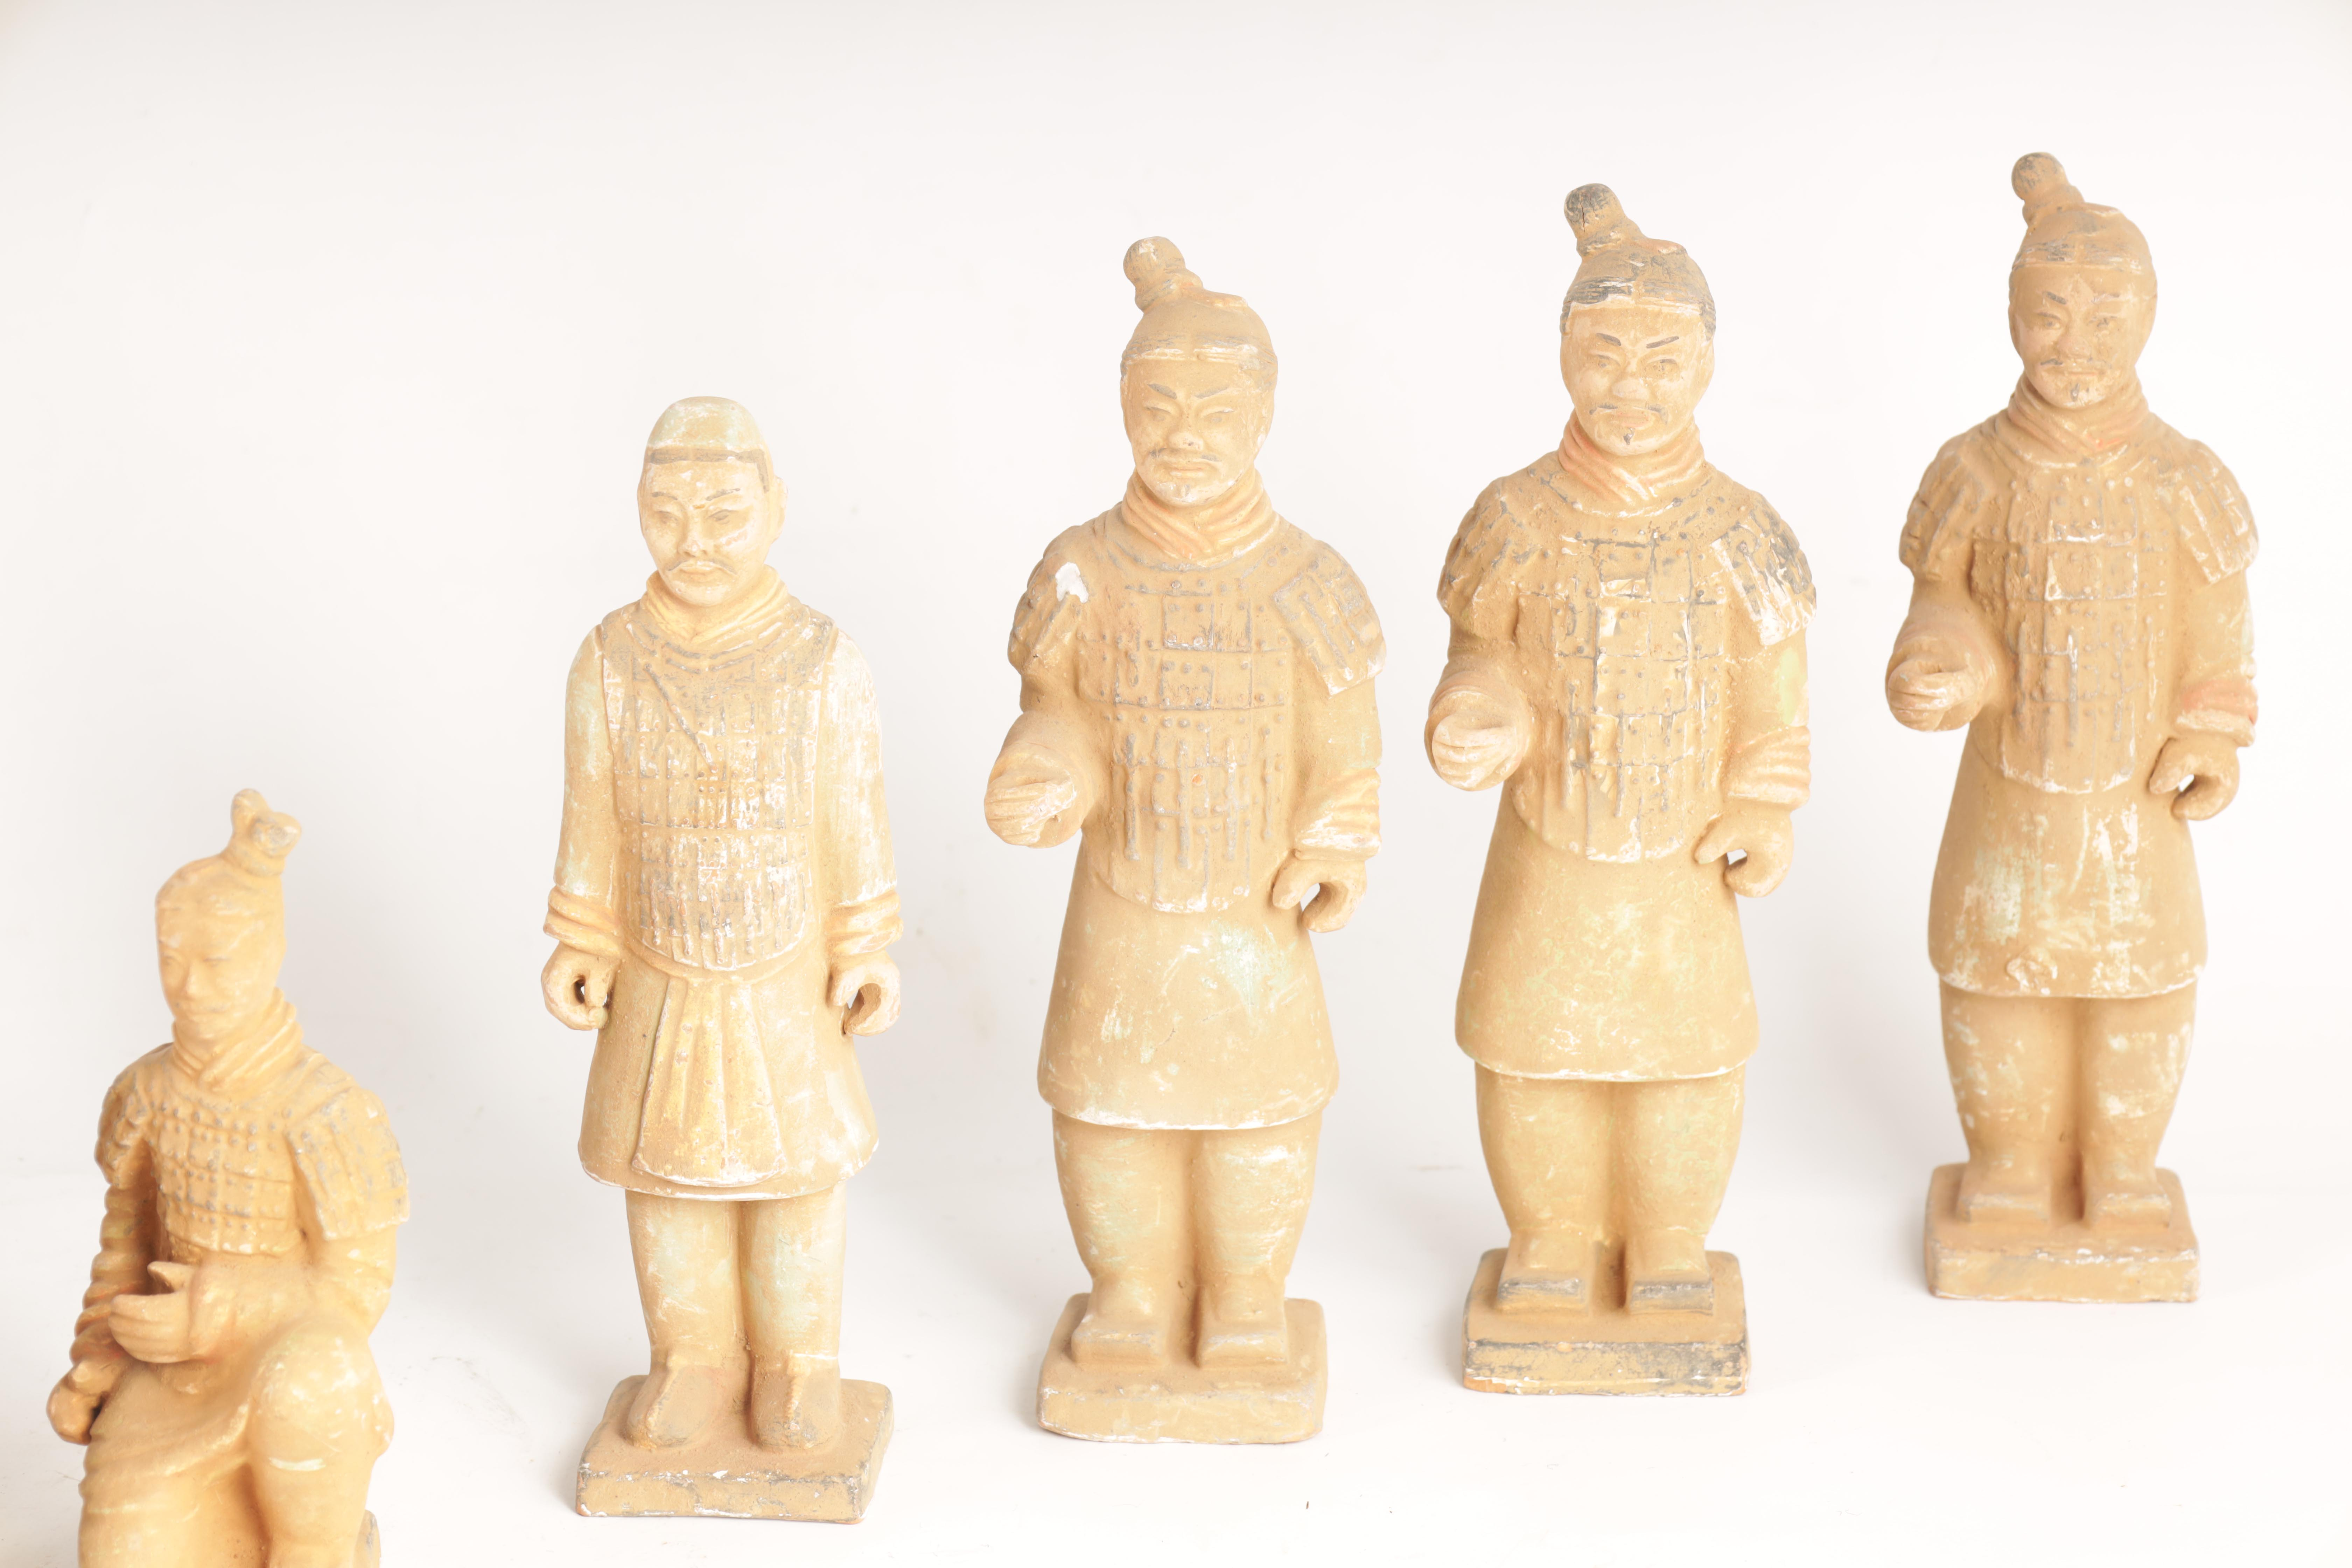 A SET OF 12 20TH CENTURY CHINESE FIGURES MODELLED AS THE TERRACOTTA ARMY depicting soldiers in - Image 4 of 7